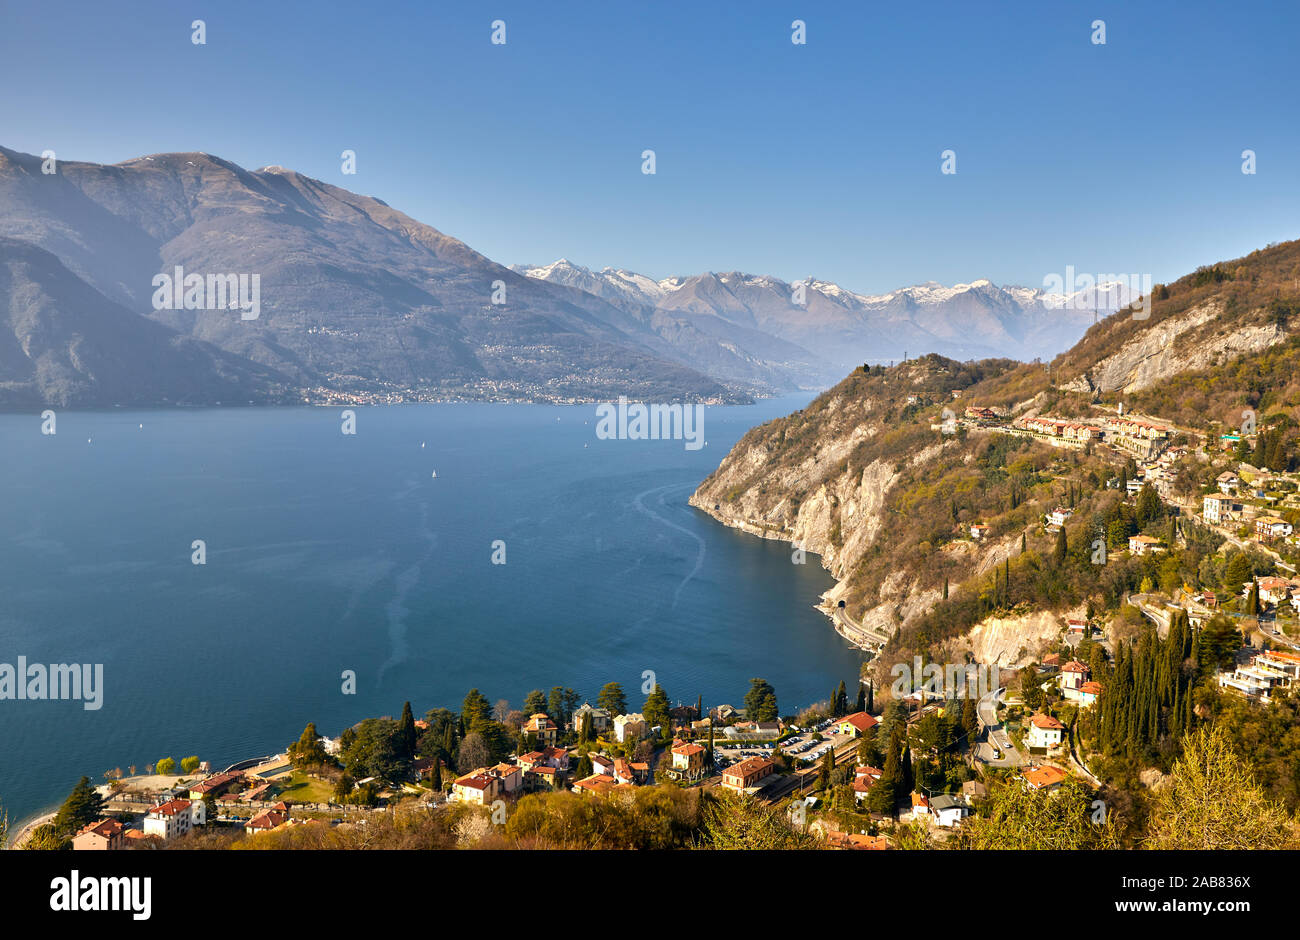 High angle view of Lake Como from Castle Vezio with Varenna and Gittana, Lombardy, Italian Lakes, Italy, Europe Stock Photo